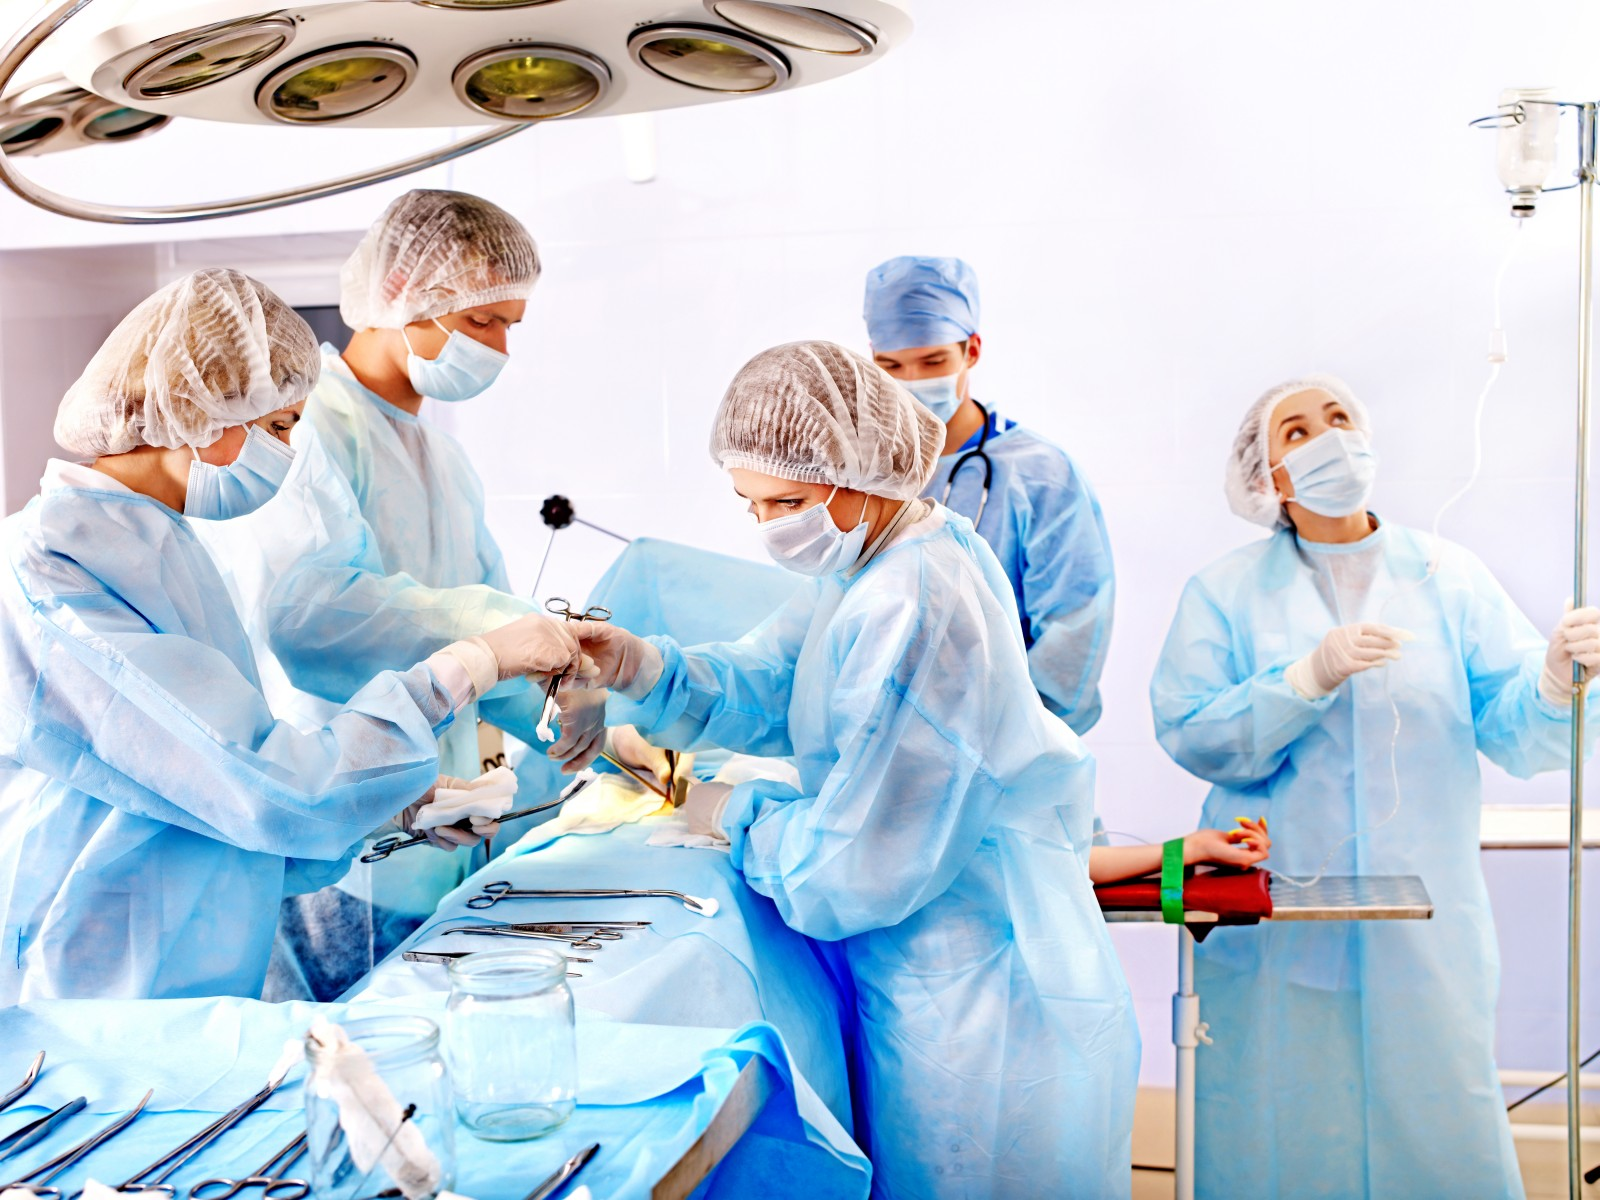 Surgeon Degree Programs Information And Resources